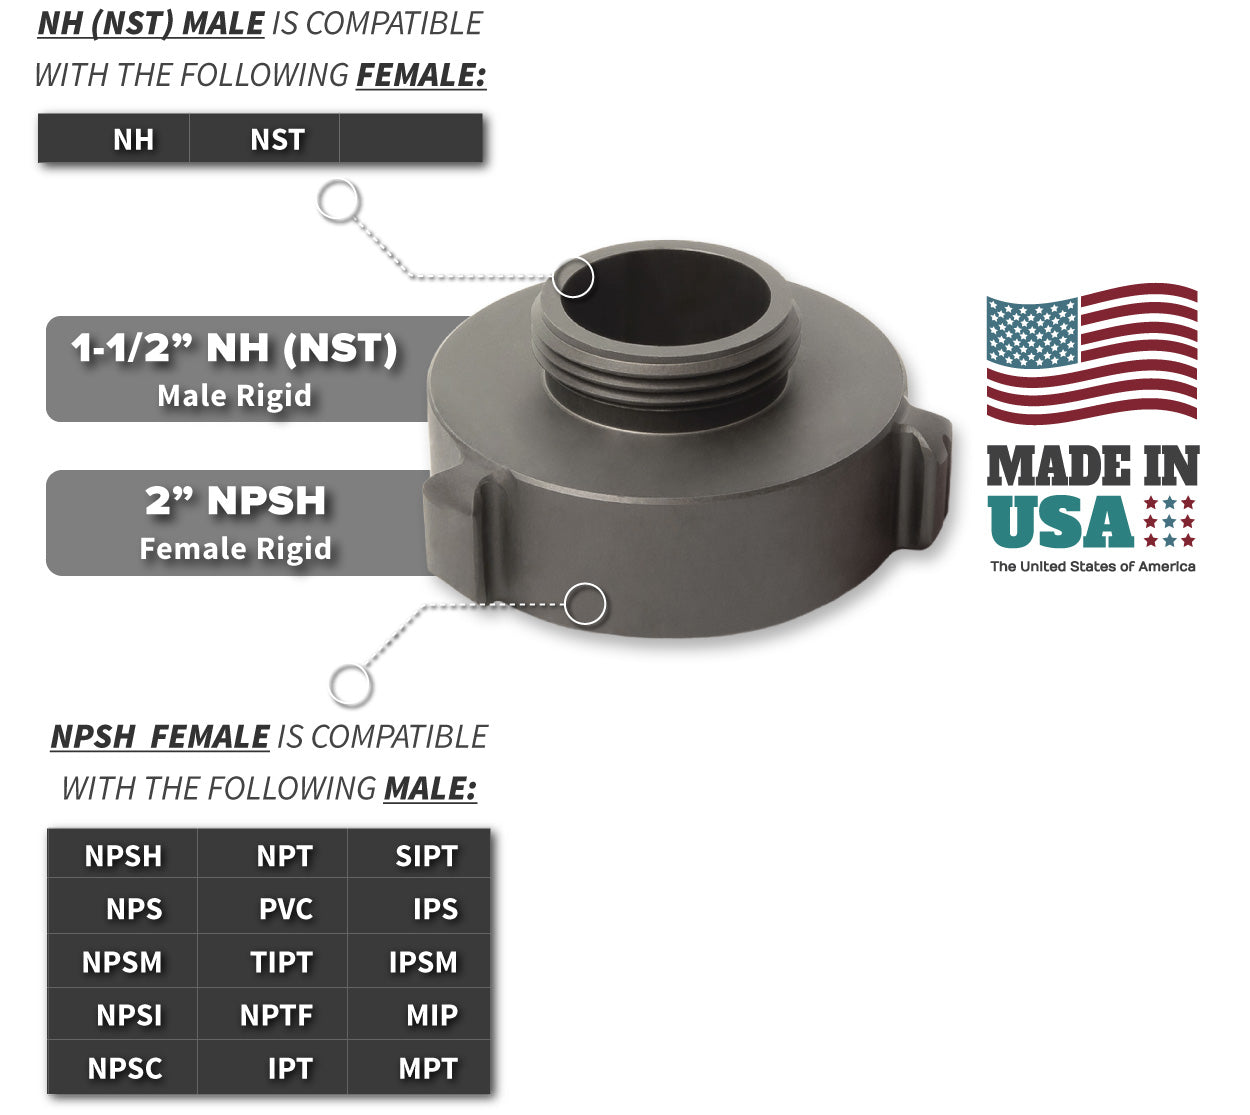 2 Inch NPSH Female x 1.5 Inch NH-NST Male Compatibility Thread Chart